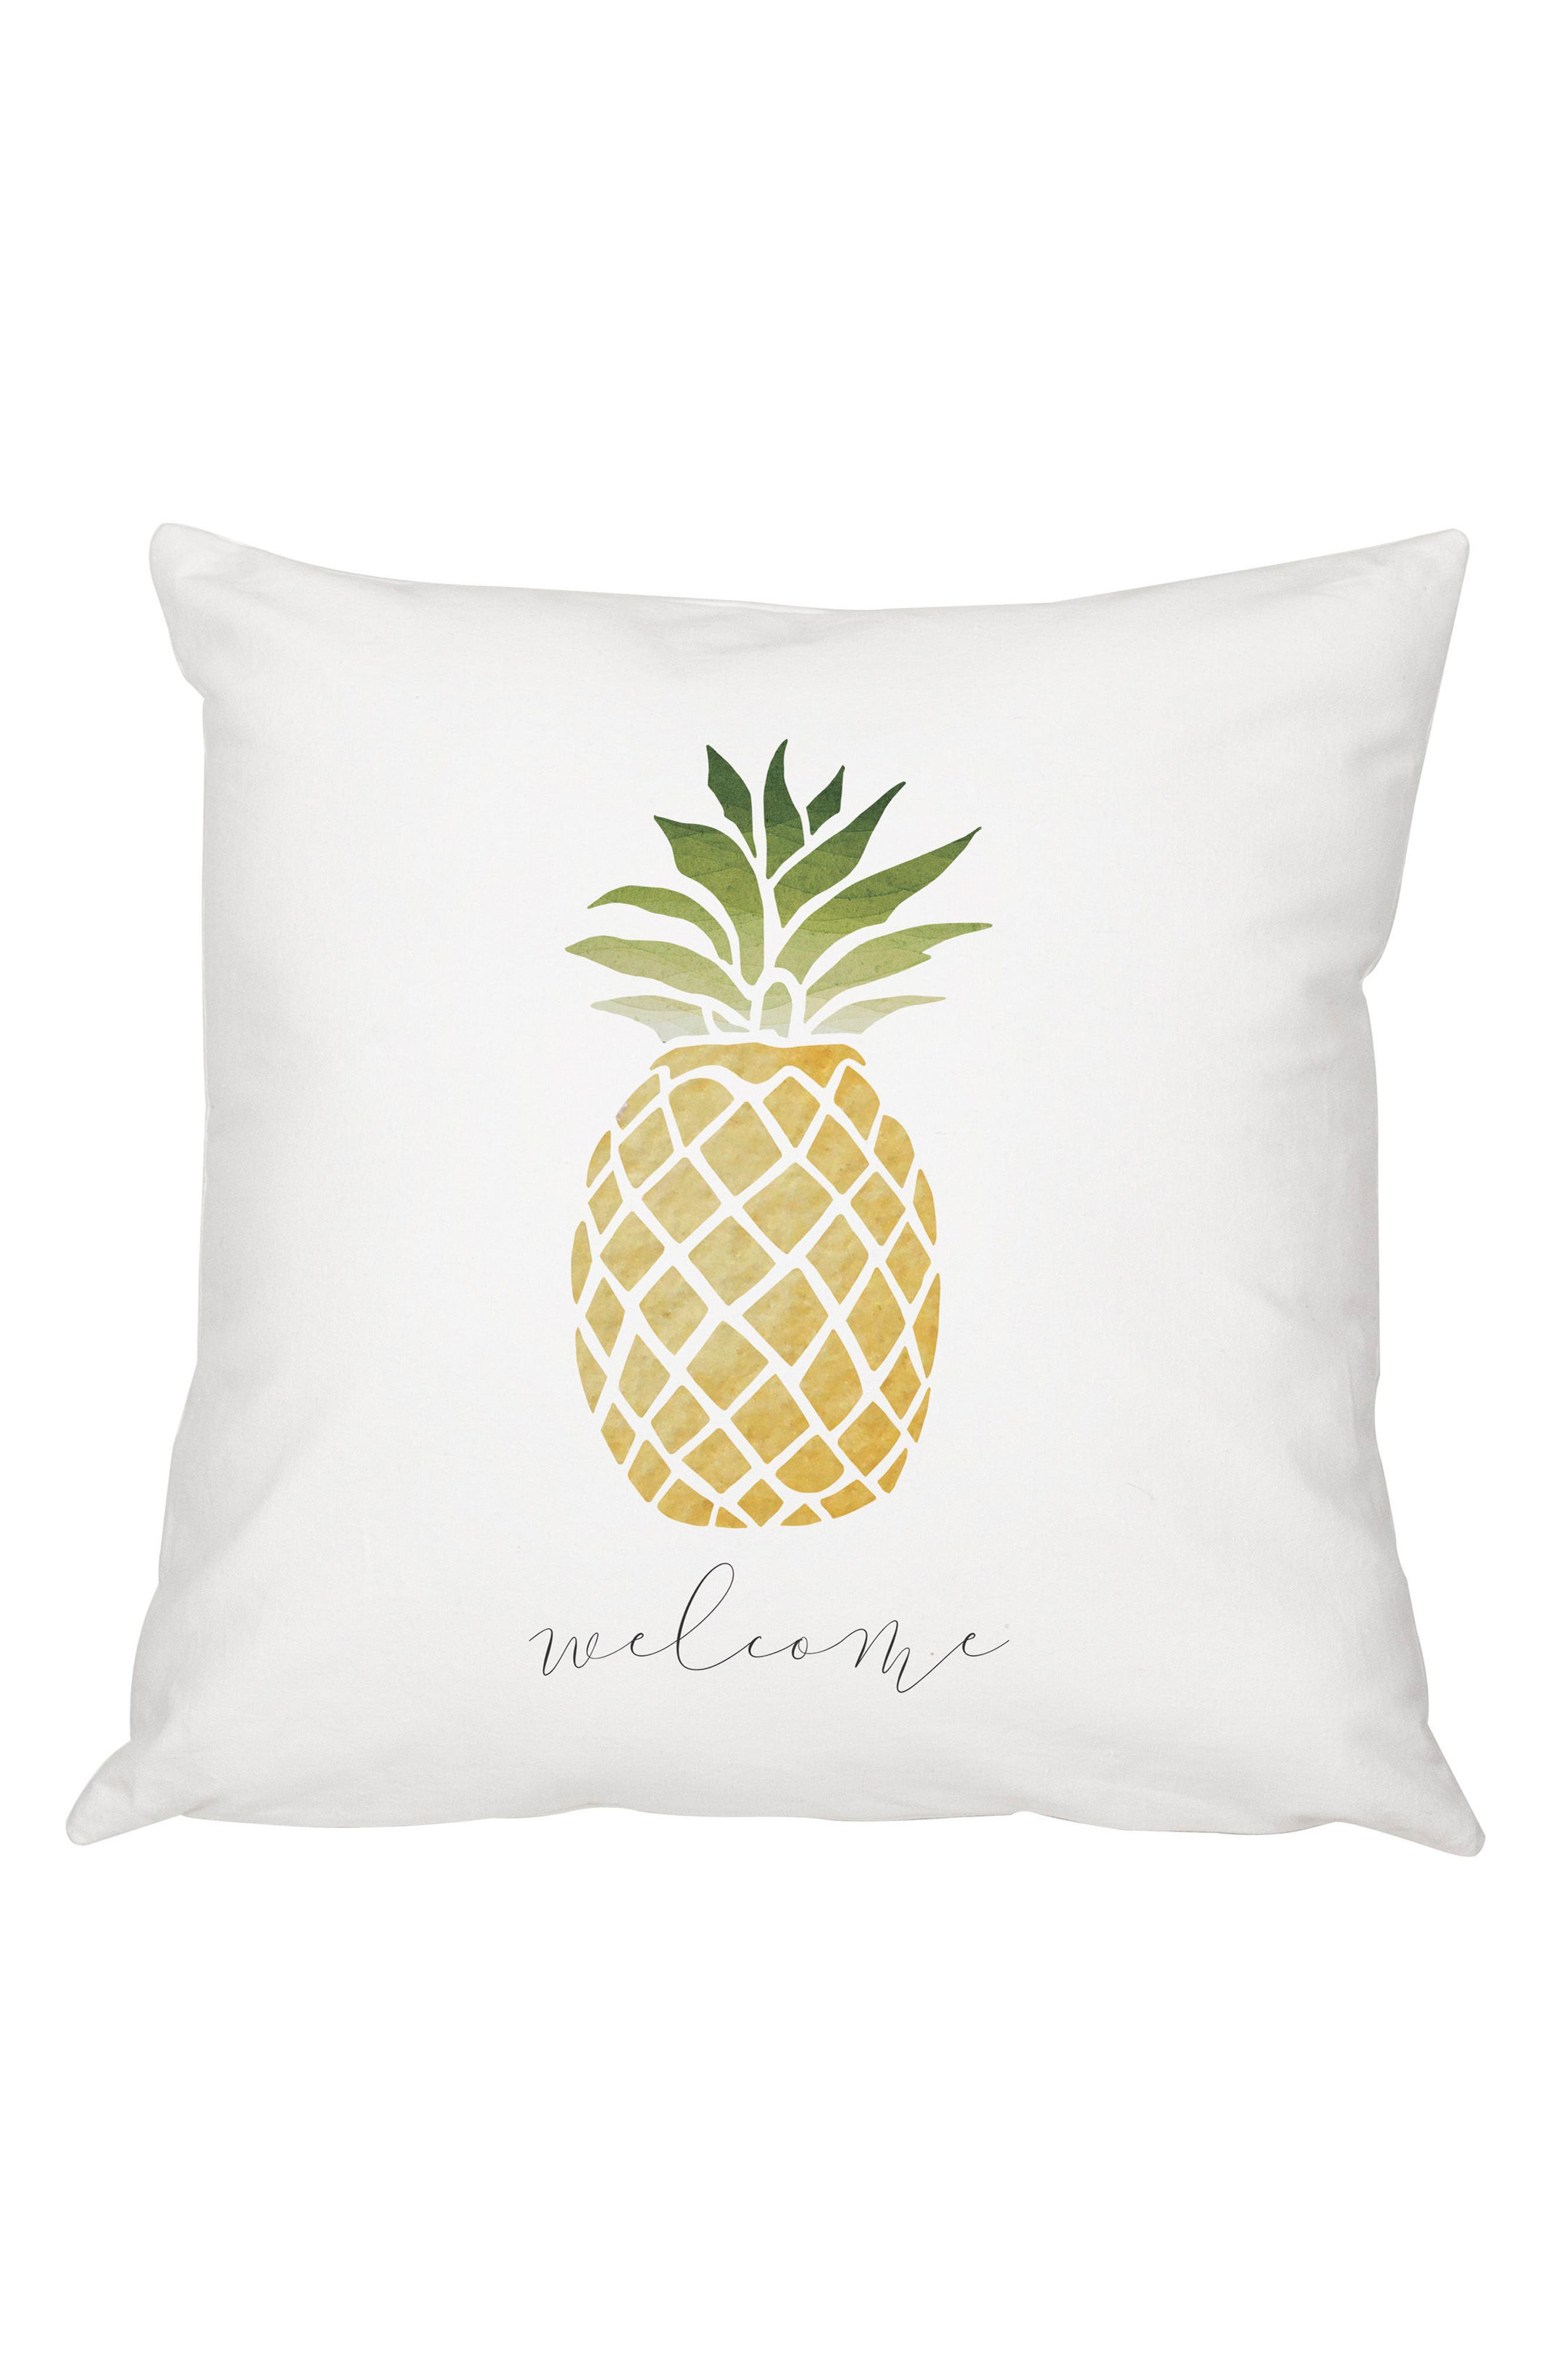 Pineapple Accent Pillow,                         Main,                         color, 100